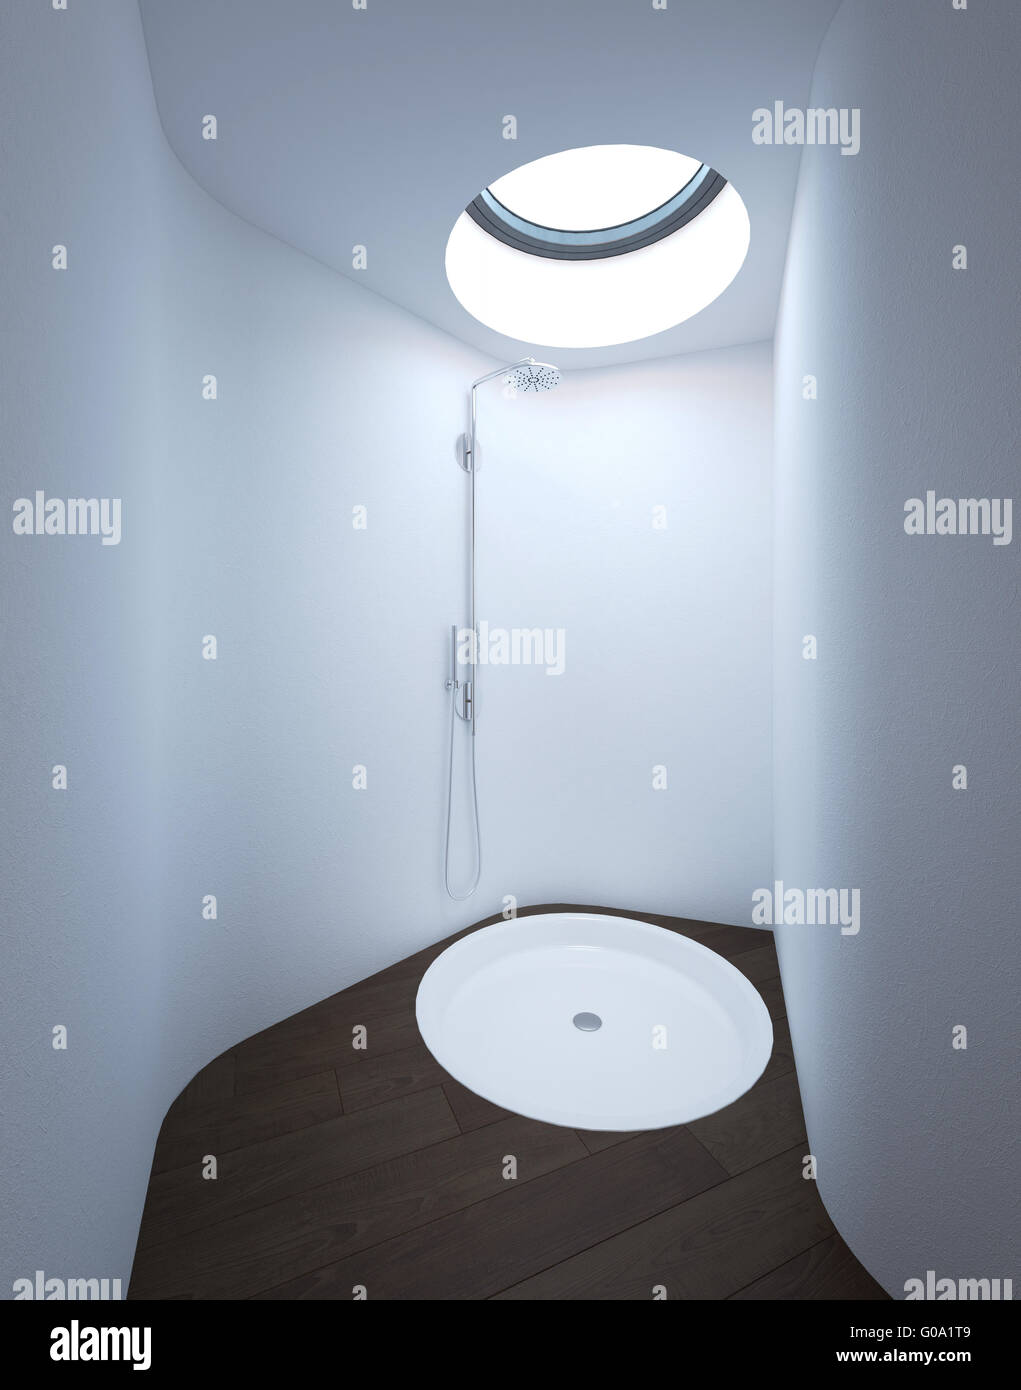 Modern Shower with Skylight in Bathroom with White Walls and Wooden ...